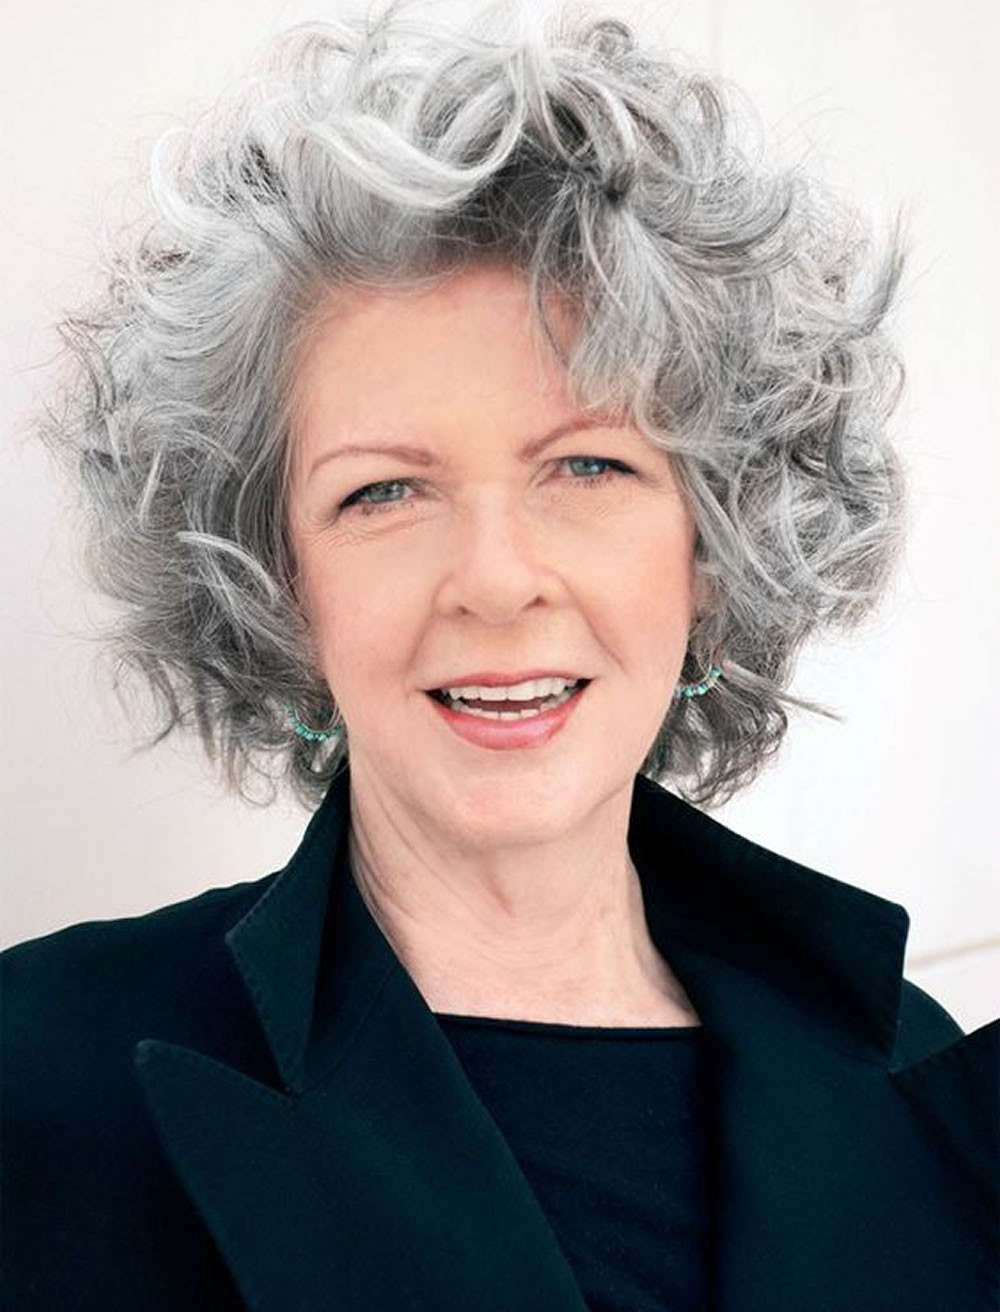 Best Short Haircuts For Older Women  Curly Short Hairstyles for Older Women Over 50 – Best